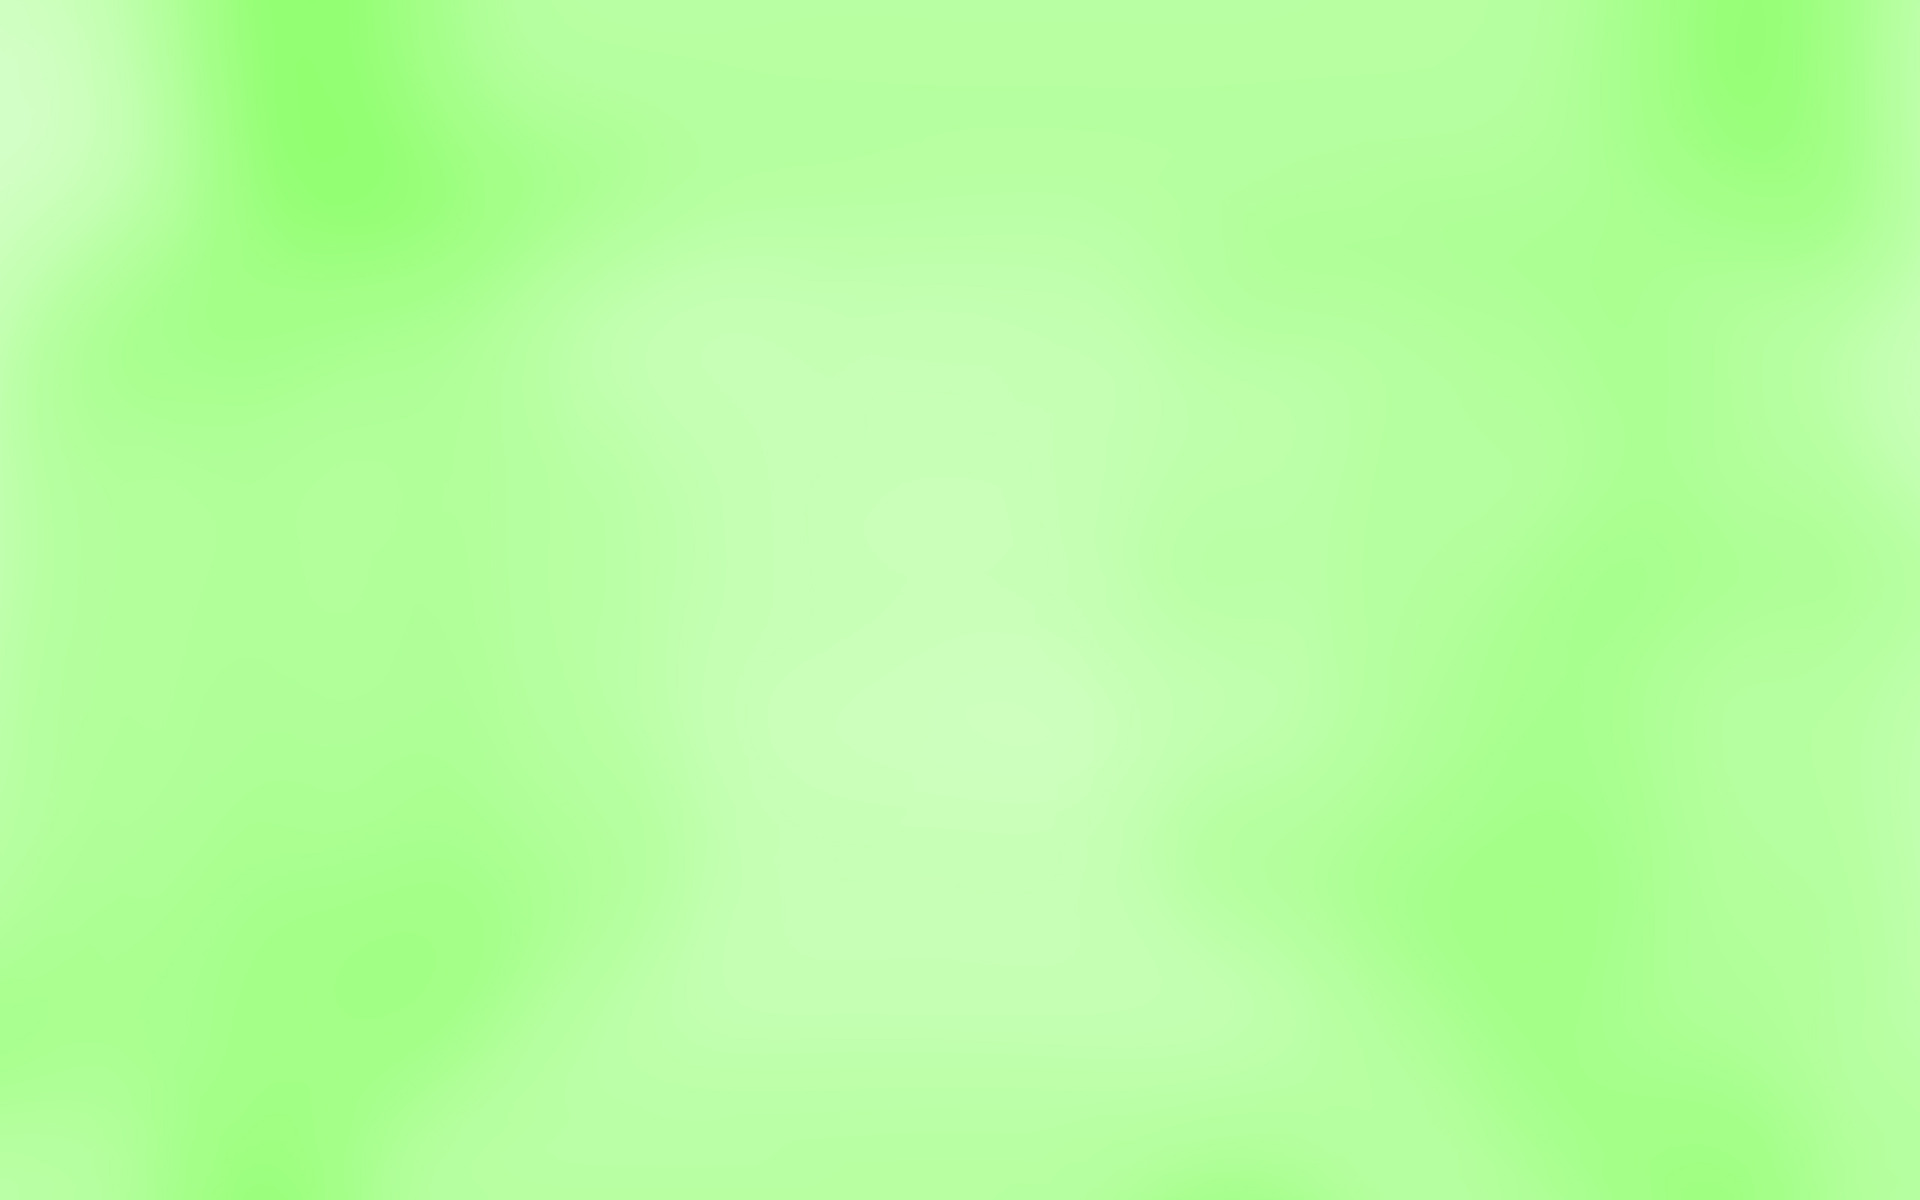 Green Gradient 1920 1200 Abstract Background 80 35608735